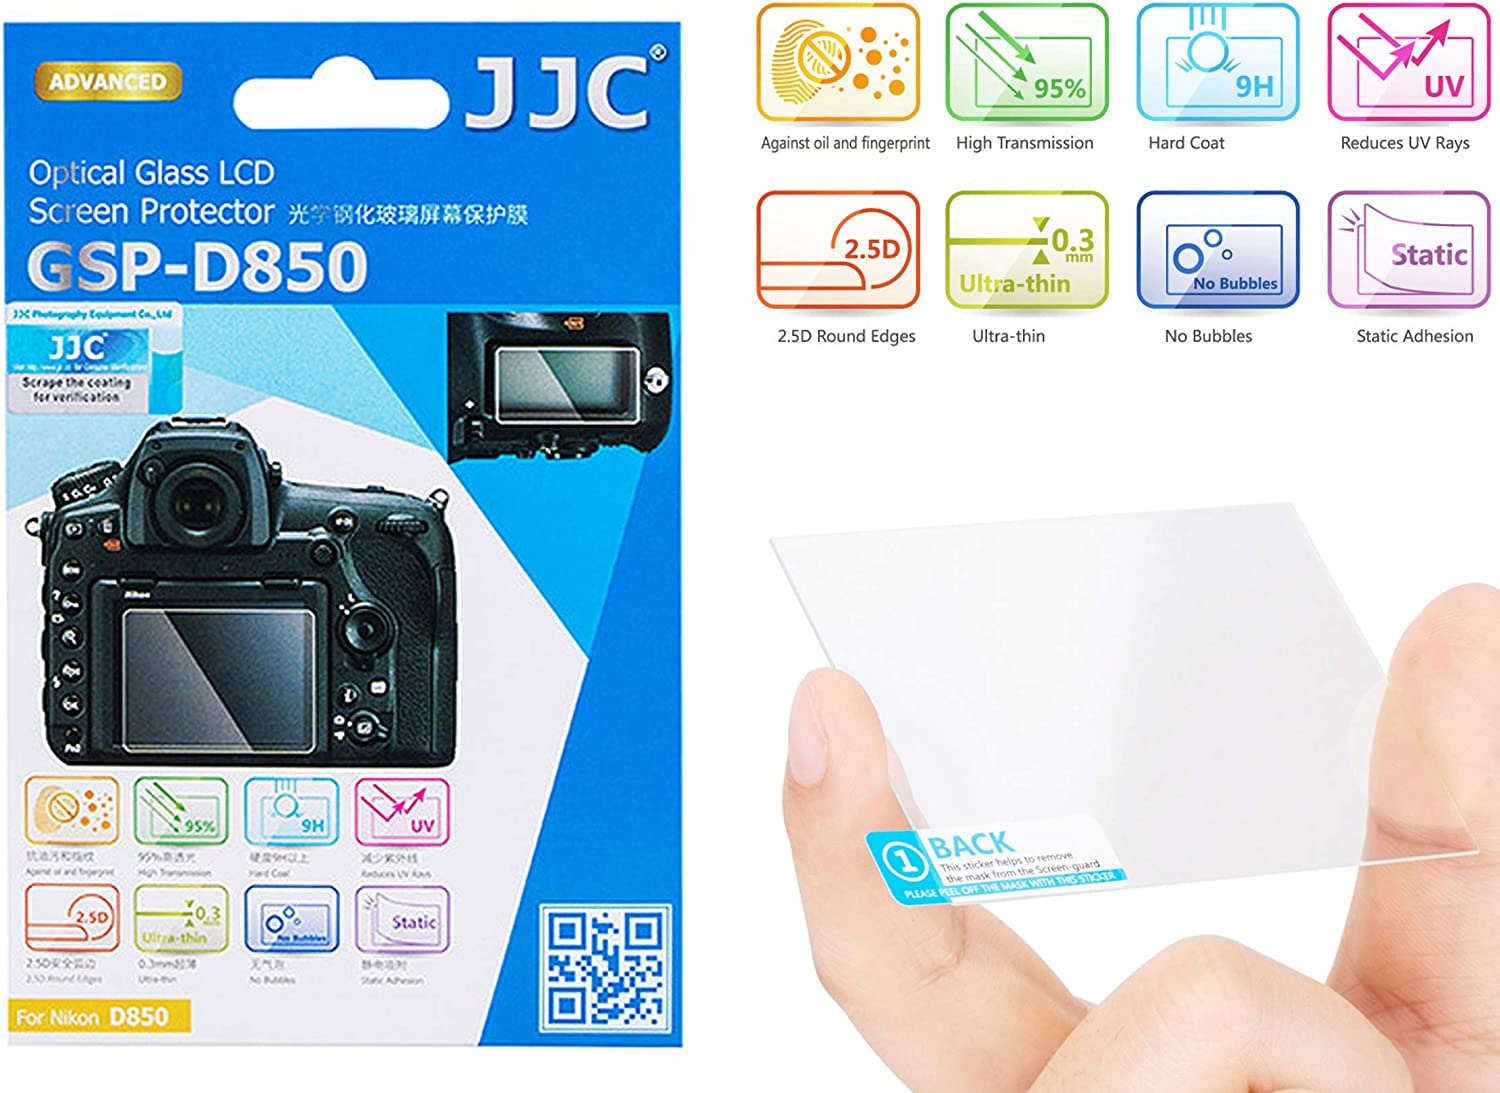 JJC GSP-D7500 0.01 Ultra-Thin Optical Glass LCD Screen Protector for Nikon D7500 9H Water Oil /& Fingerprints Resistant 2.5D Round Edge Nikon D7500 LCD Protector